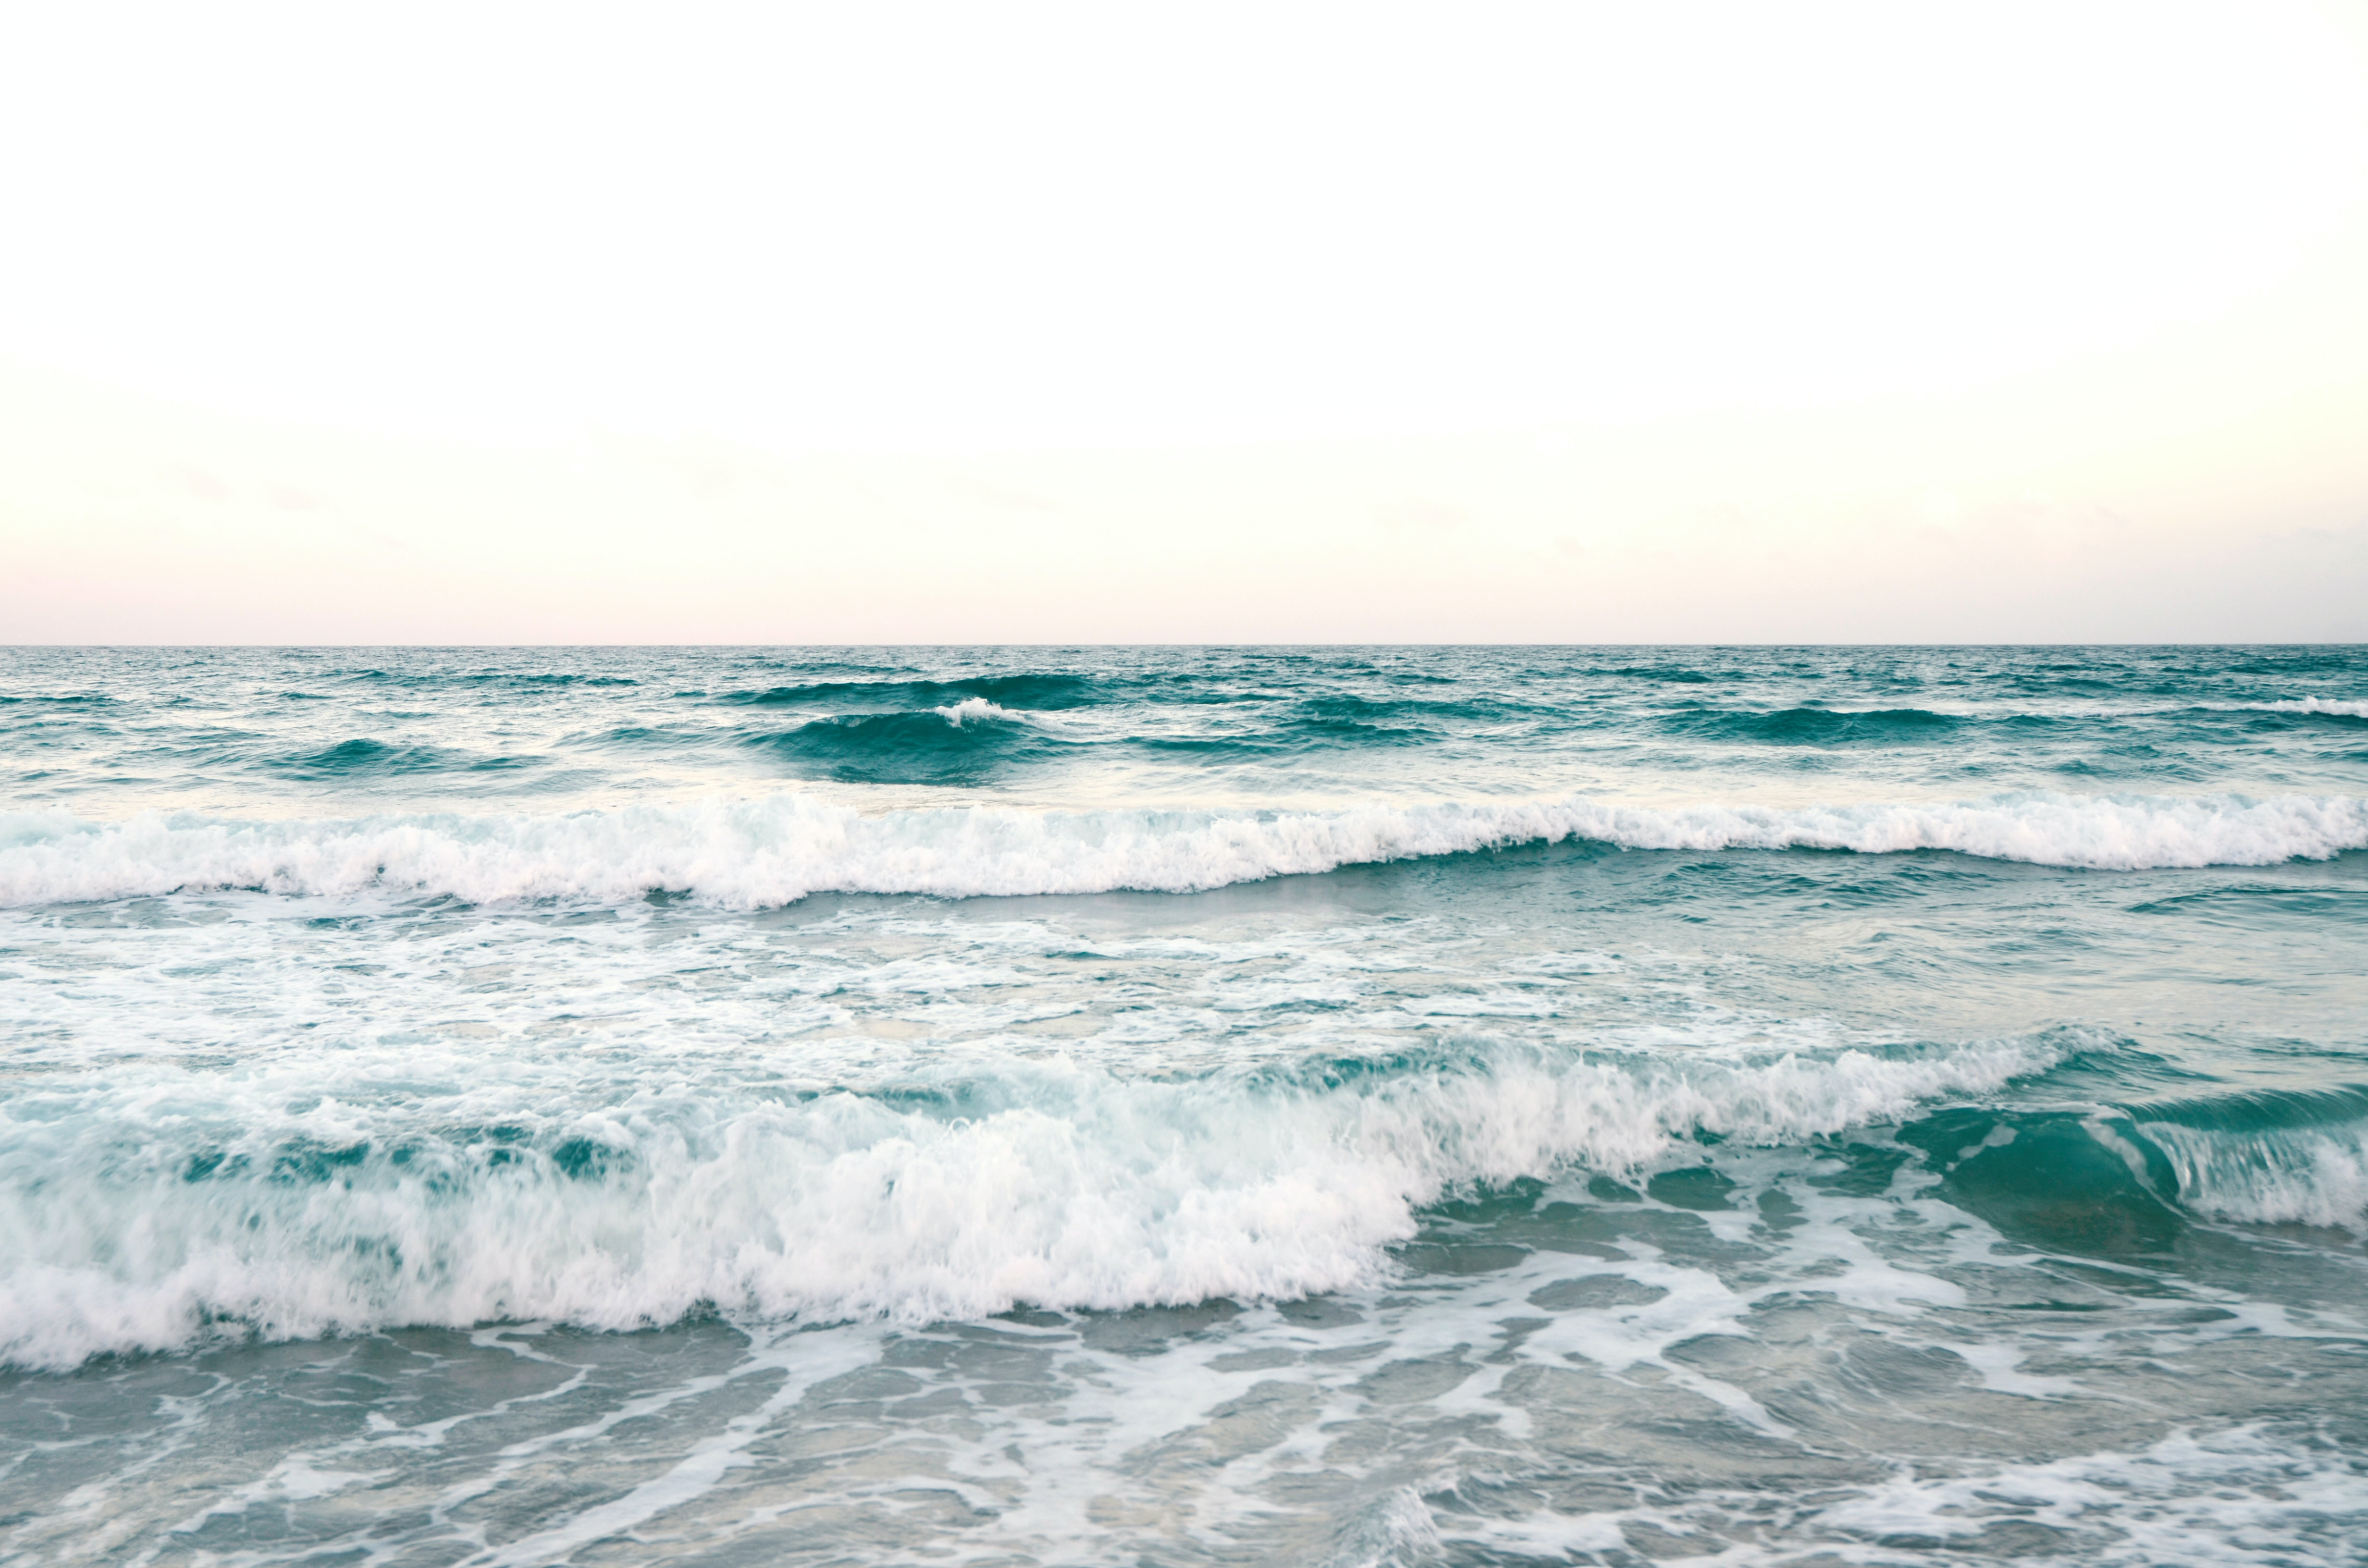 sea waves under clear sky during daytime